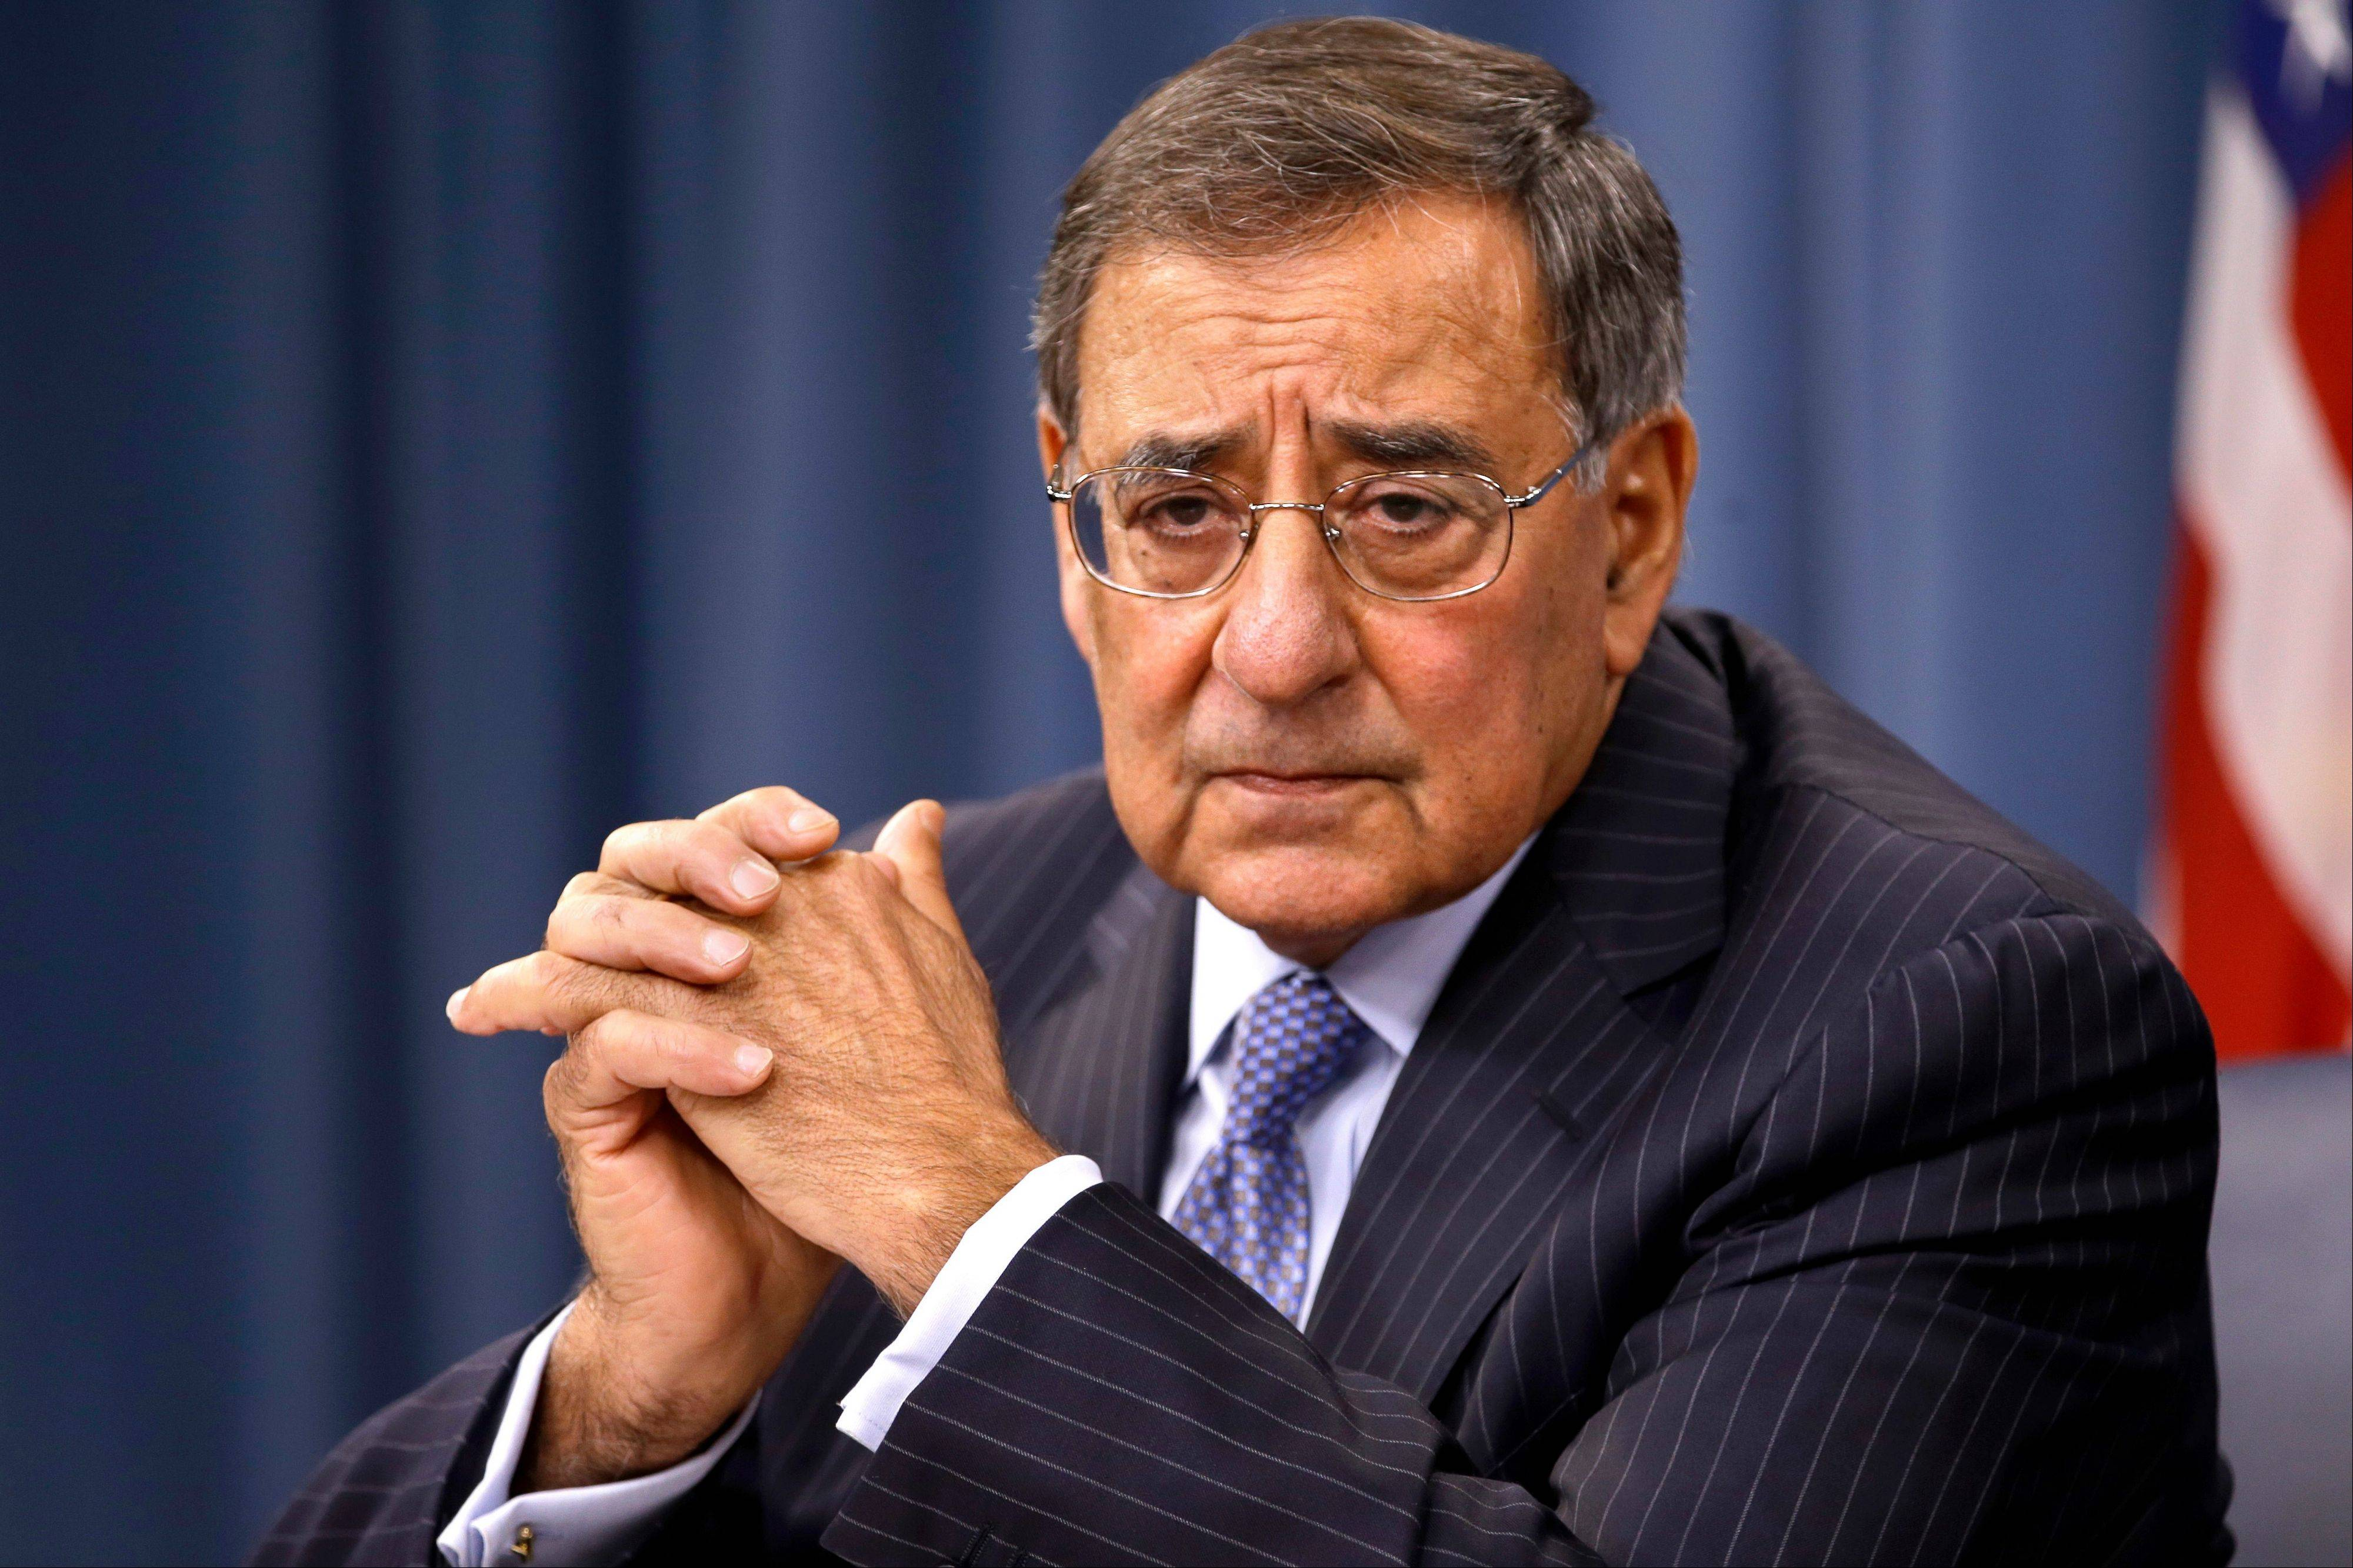 Defense Secretary Leon Panetta listens during a news conference at the Pentagon in Washington. House Republicans� �fiscal cliff� counteroffer to President Barack Obama hints at billions in dollars of defense cuts on top of the $500 billion that the White House and Congress backed last year.